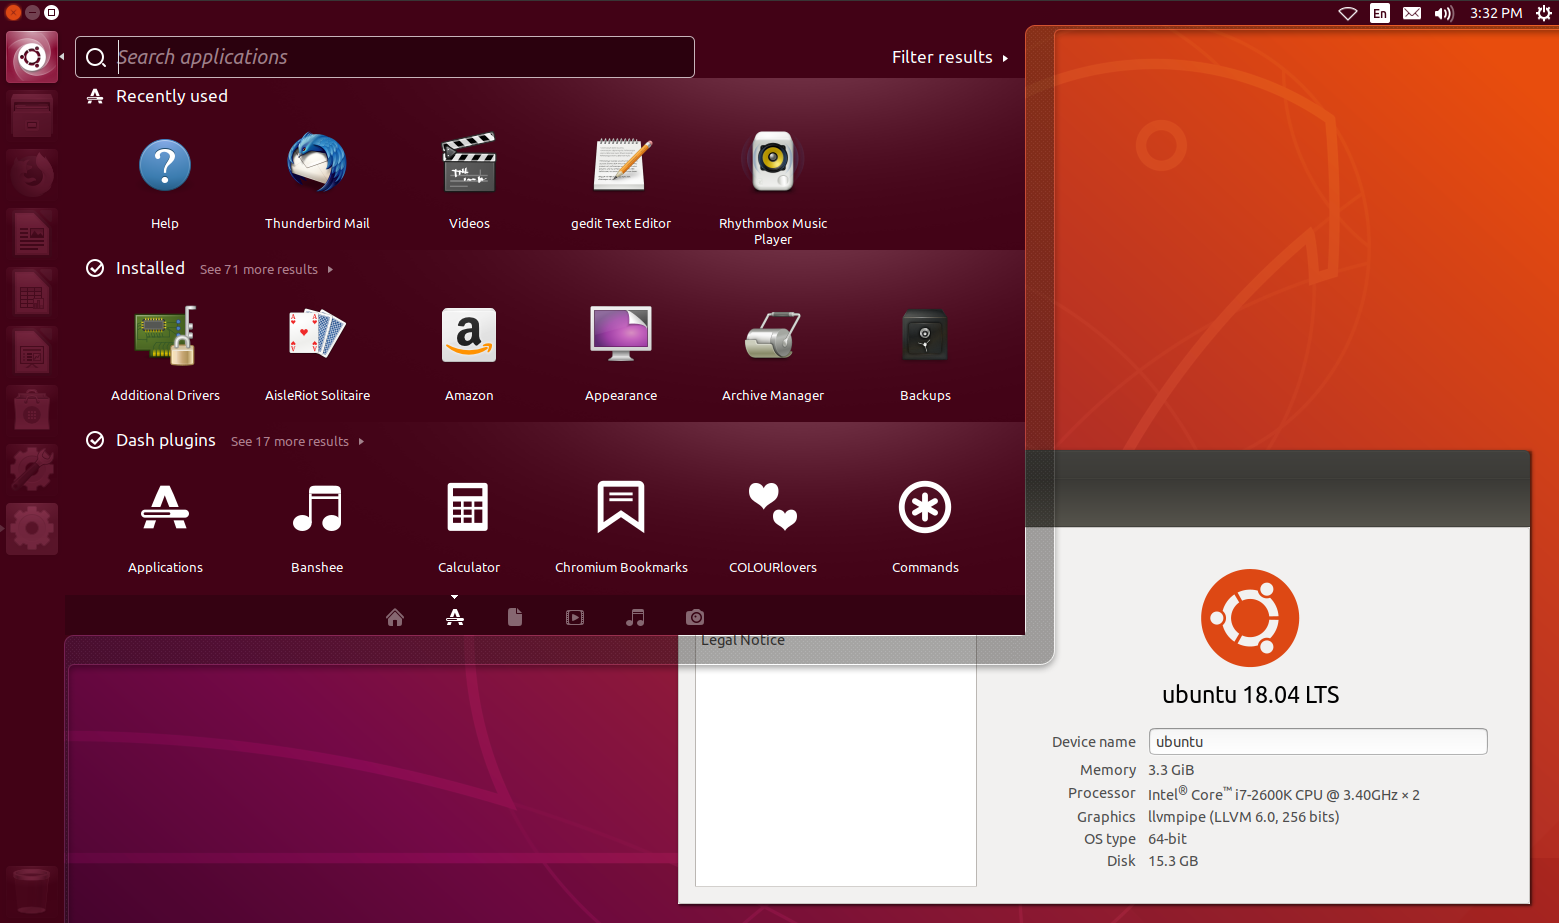 Ubuntu can be usable on Arm-powered laptops thanks to open